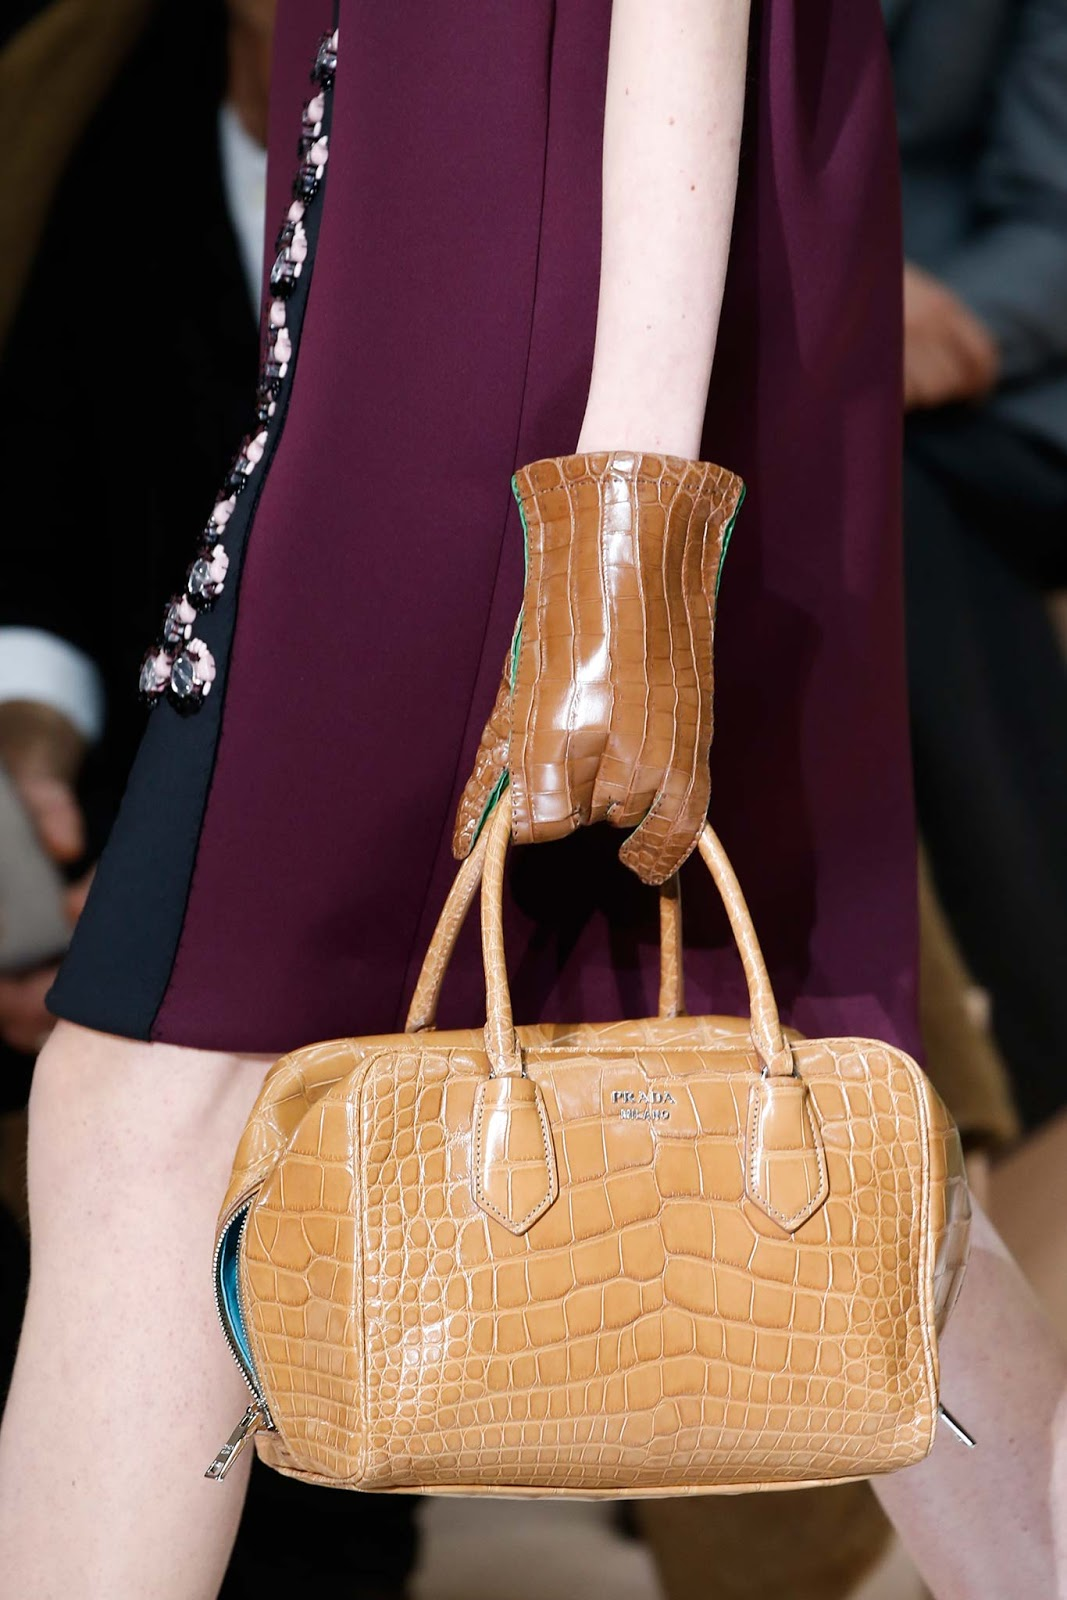 Fall 2015 accessories trend report / best bags / investment bags / crocodile accessories trend at Prada Fall/Winter 2015 via fashionedbylove.co.uk, british fashion blog